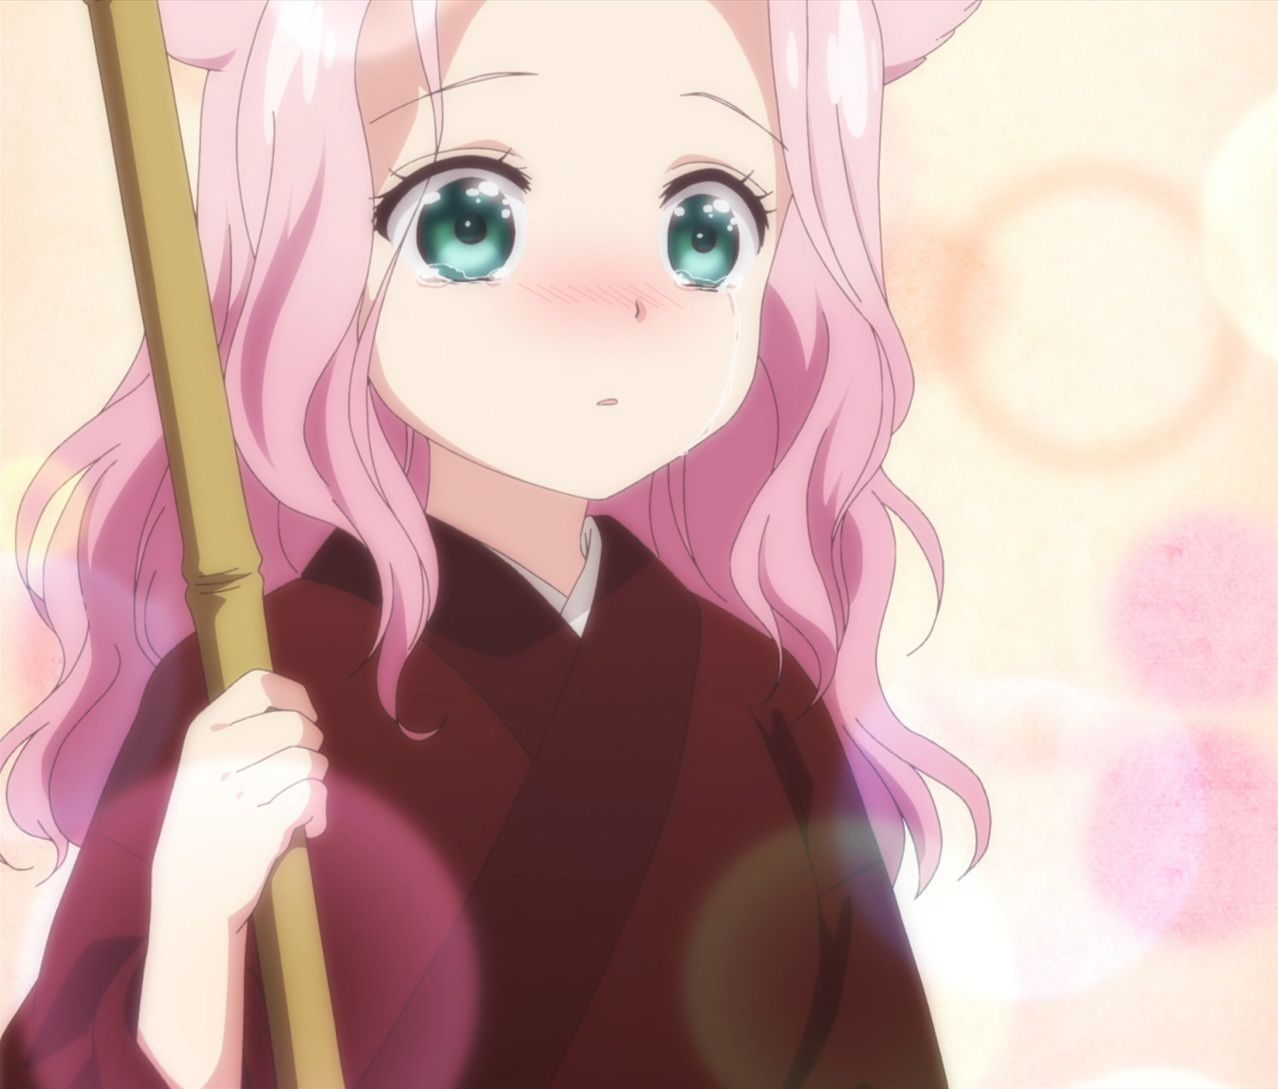 Episode 3 Of Konohana Kitan Has Arrived Come Check Out Our Review Over At Anime Soltuion We Ve Got Hd Images Stitches And Gifs O Anime Episode 3 Episode